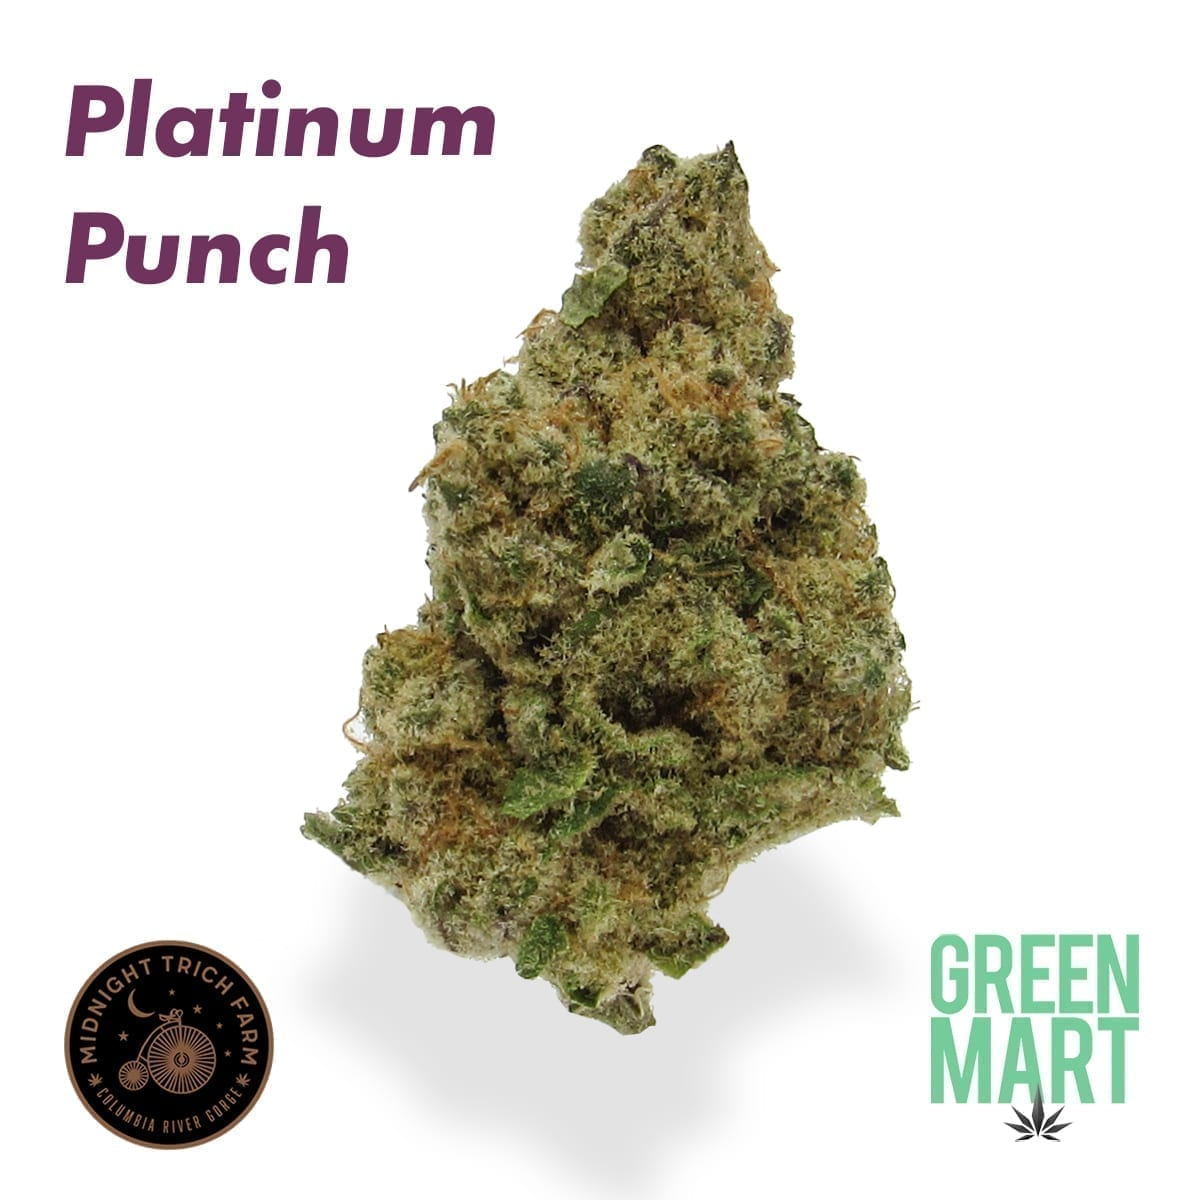 Platinum Punch